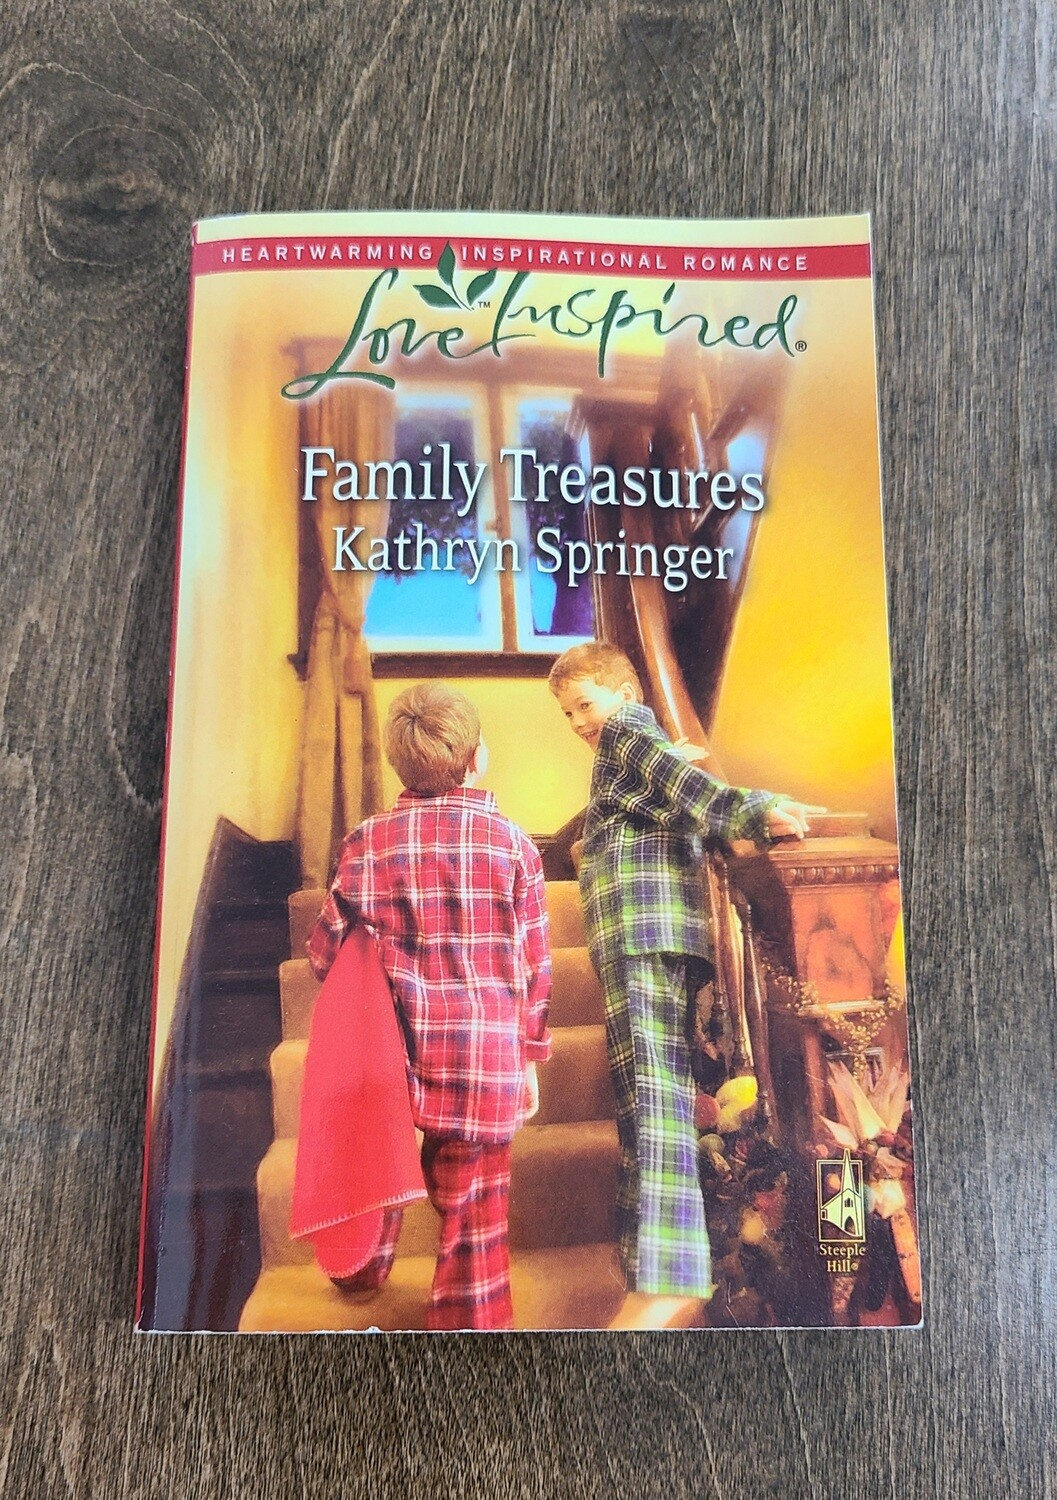 Family Treasures by Kathryn Springer